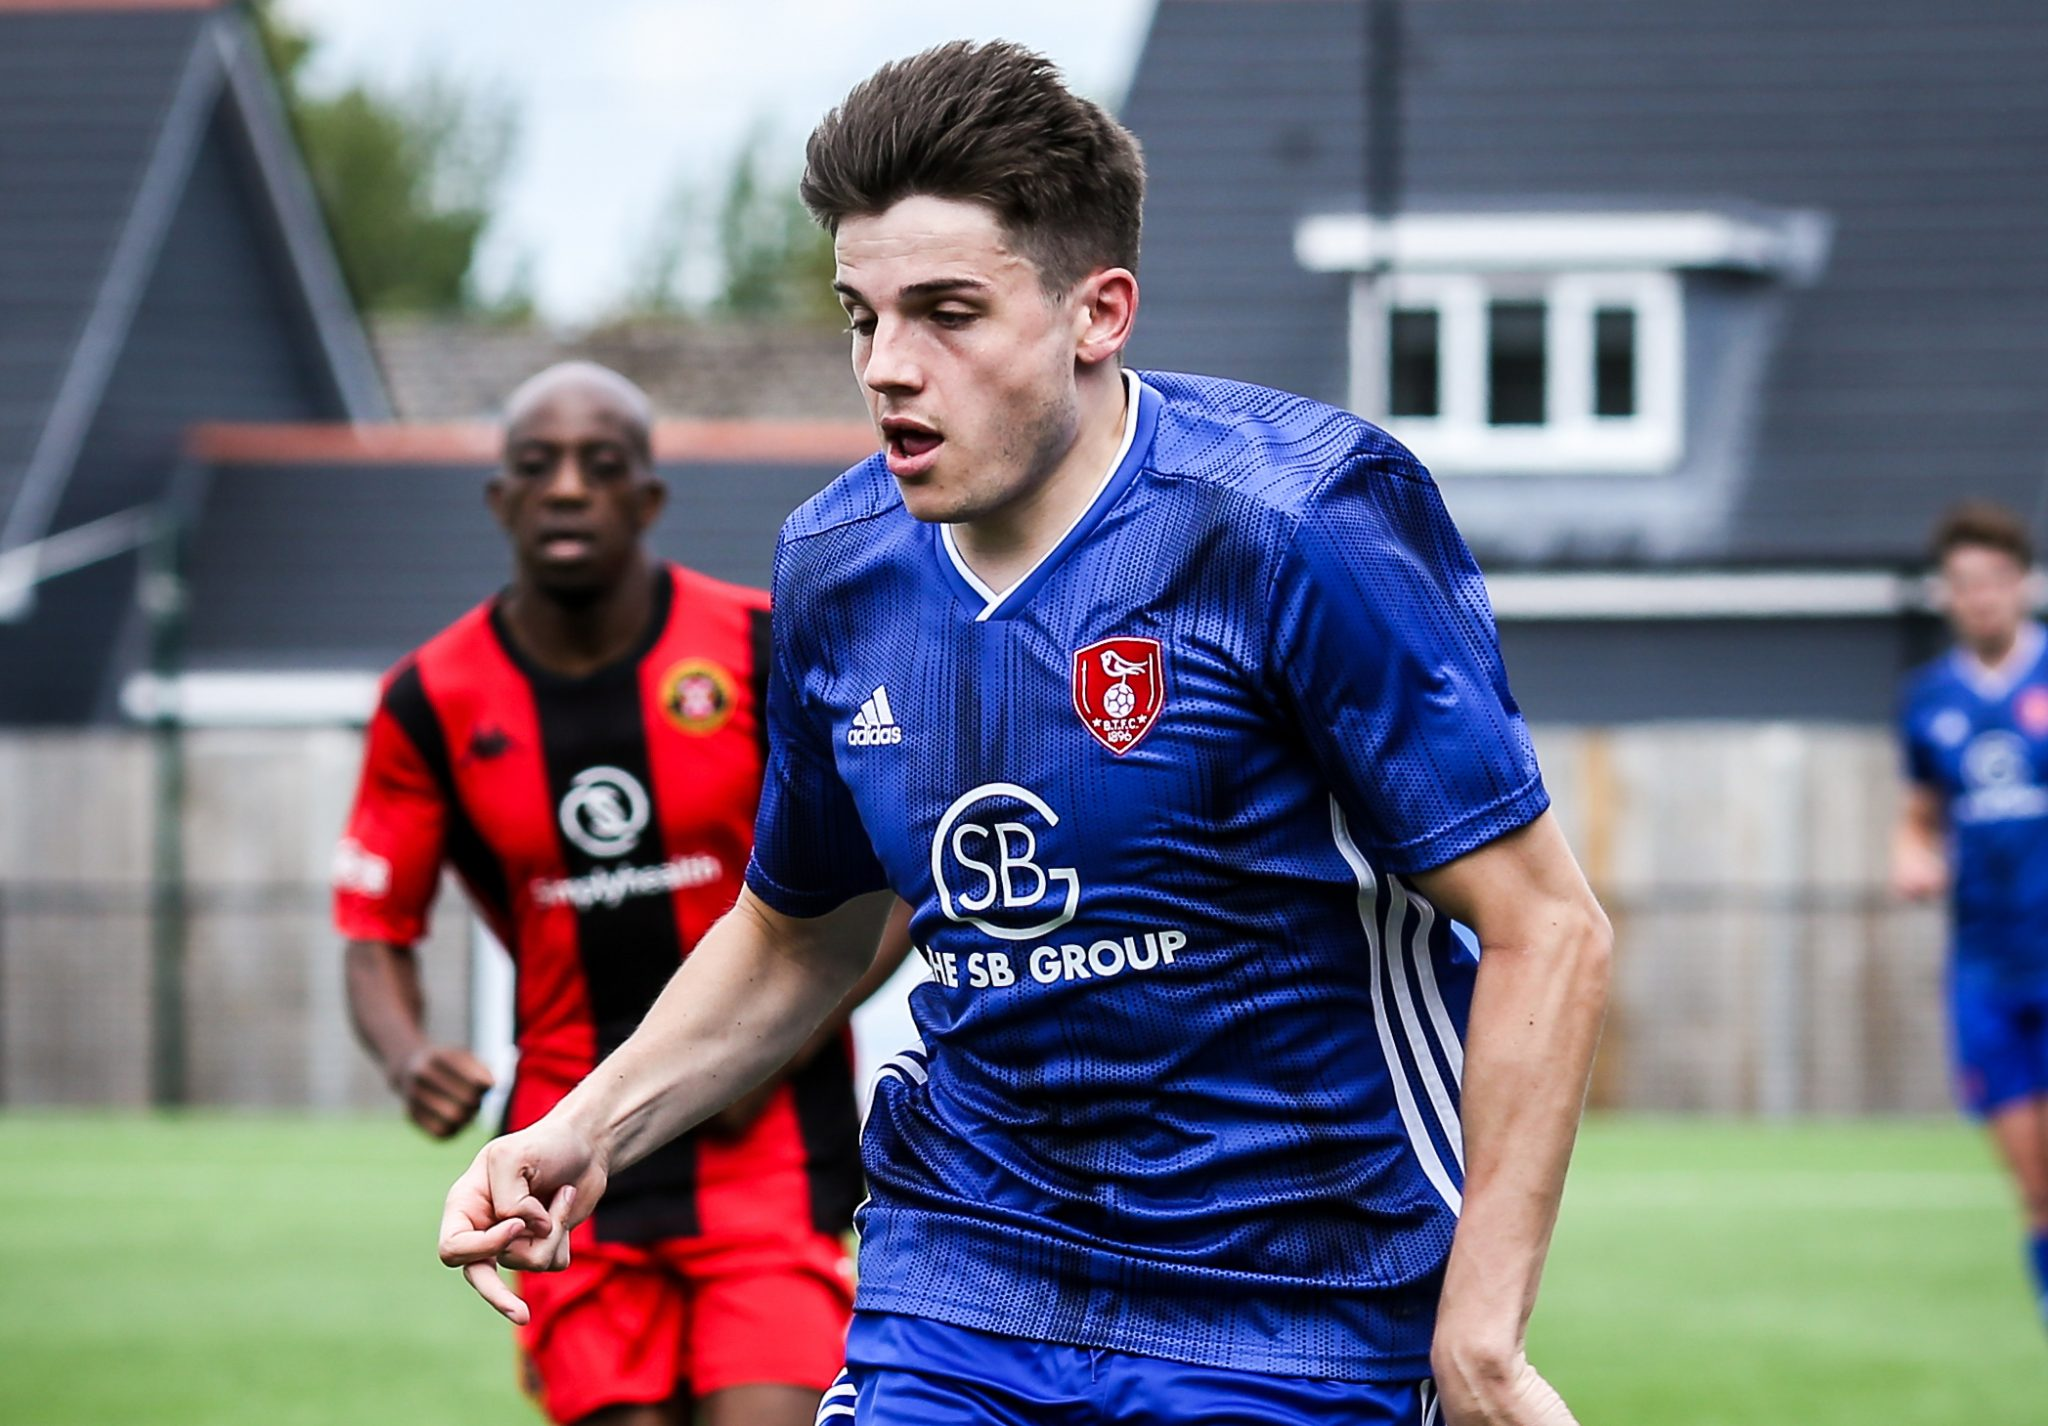 Seb Bowerman double gives Bracknell Town win at Staines